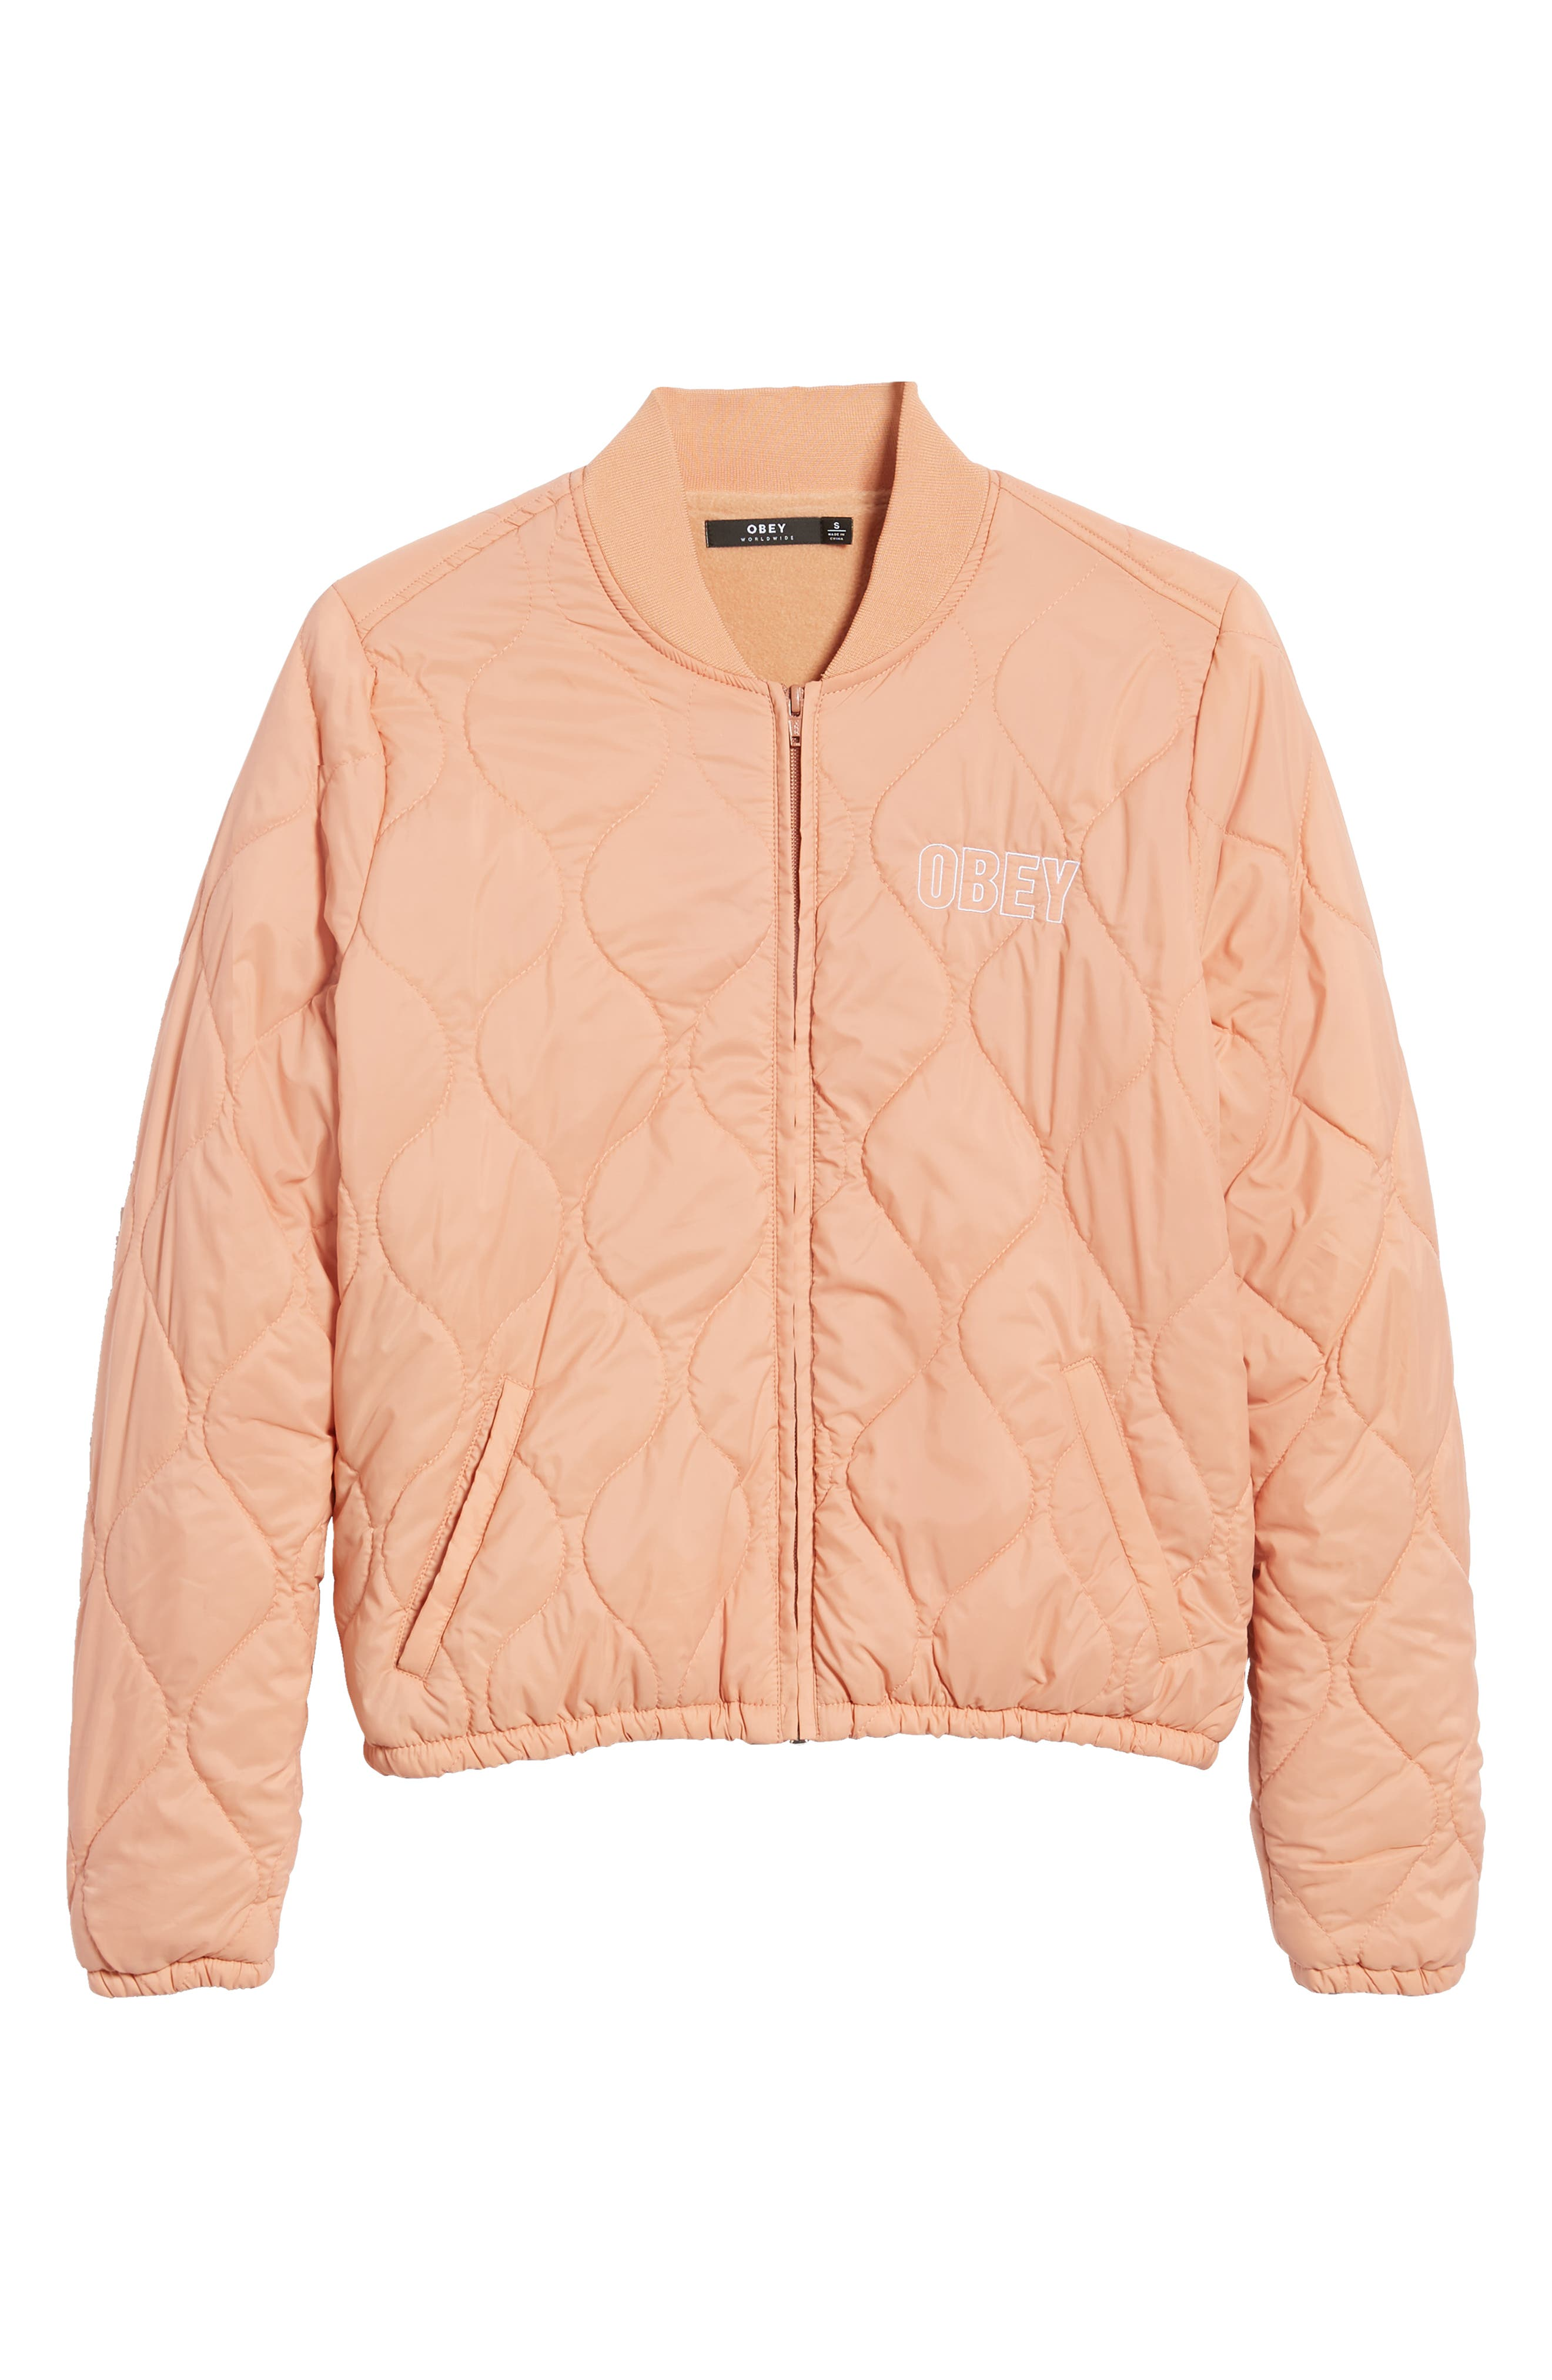 OBEY,                             Bunker Quilted Bomber Jacket,                             Alternate thumbnail 6, color,                             950